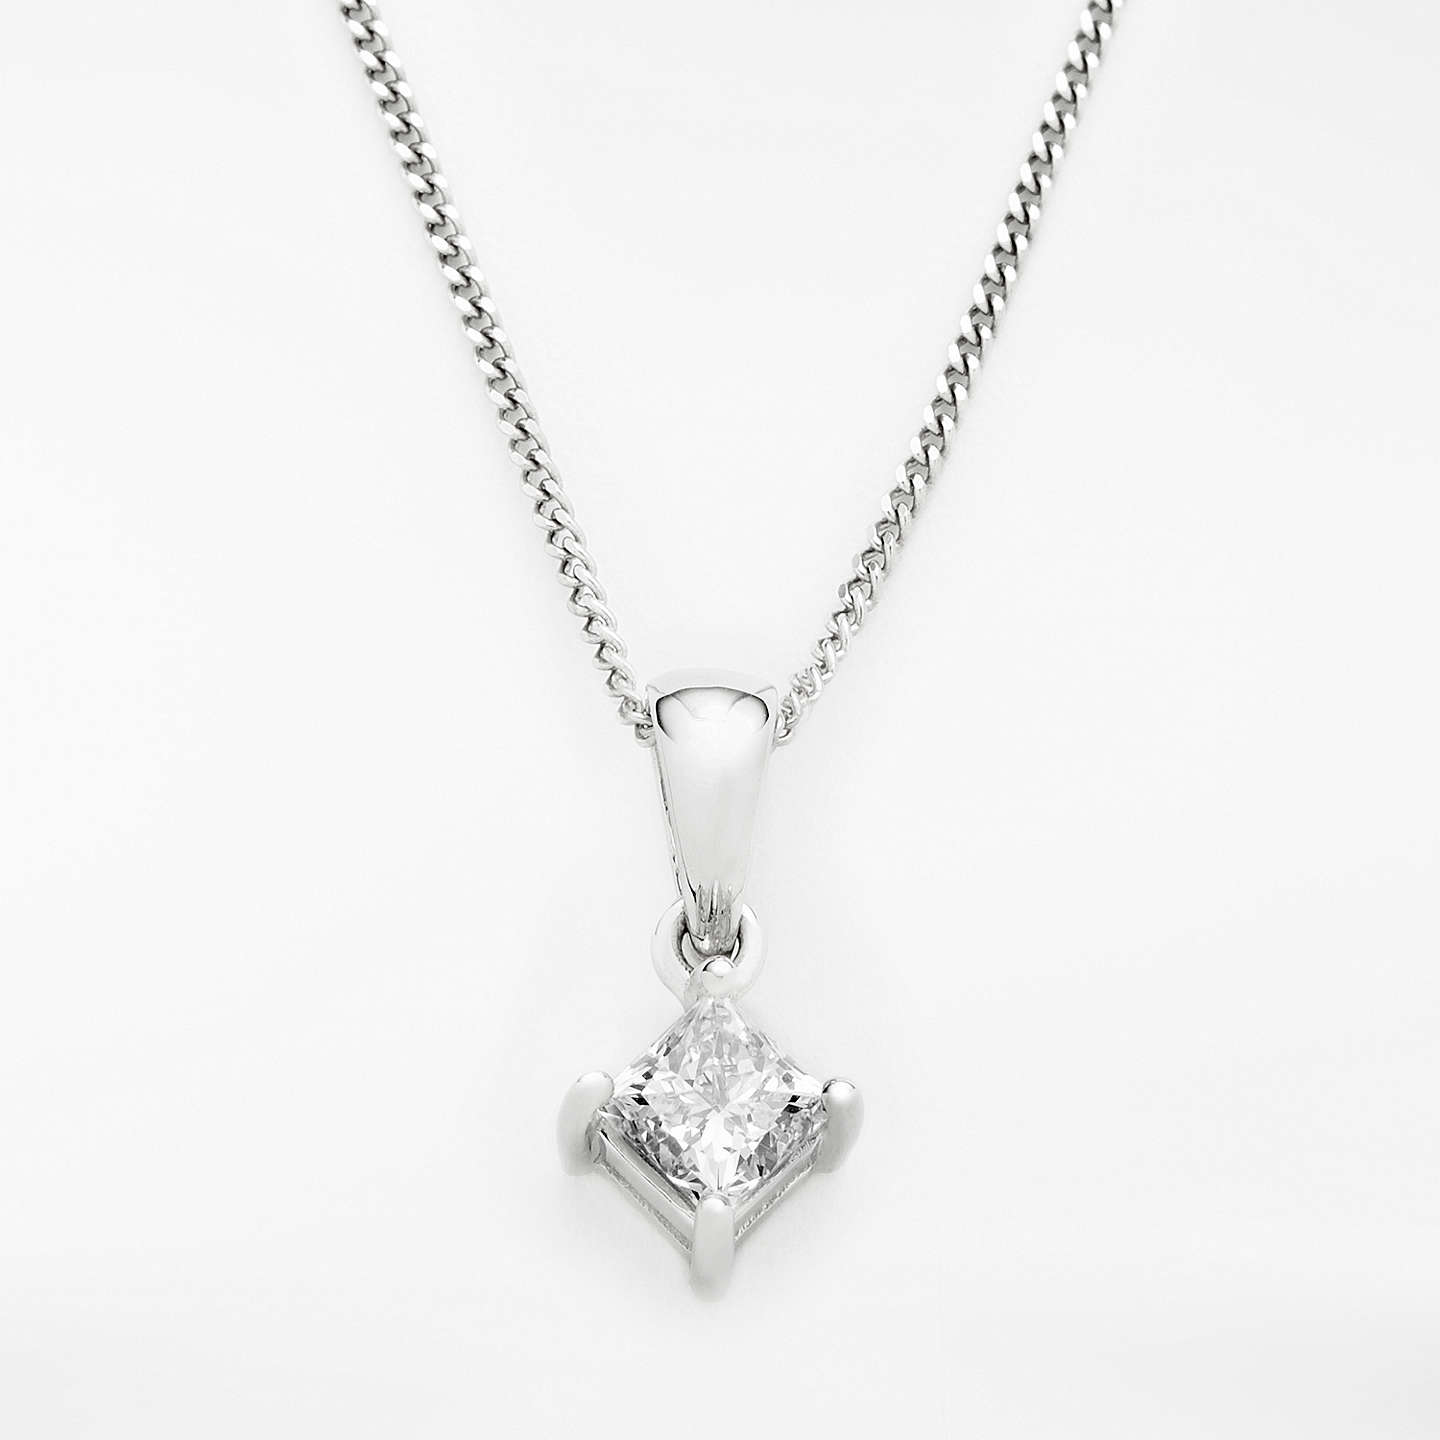 jewelry princess beautiful diamondland cut jewellery diamond pear necklace